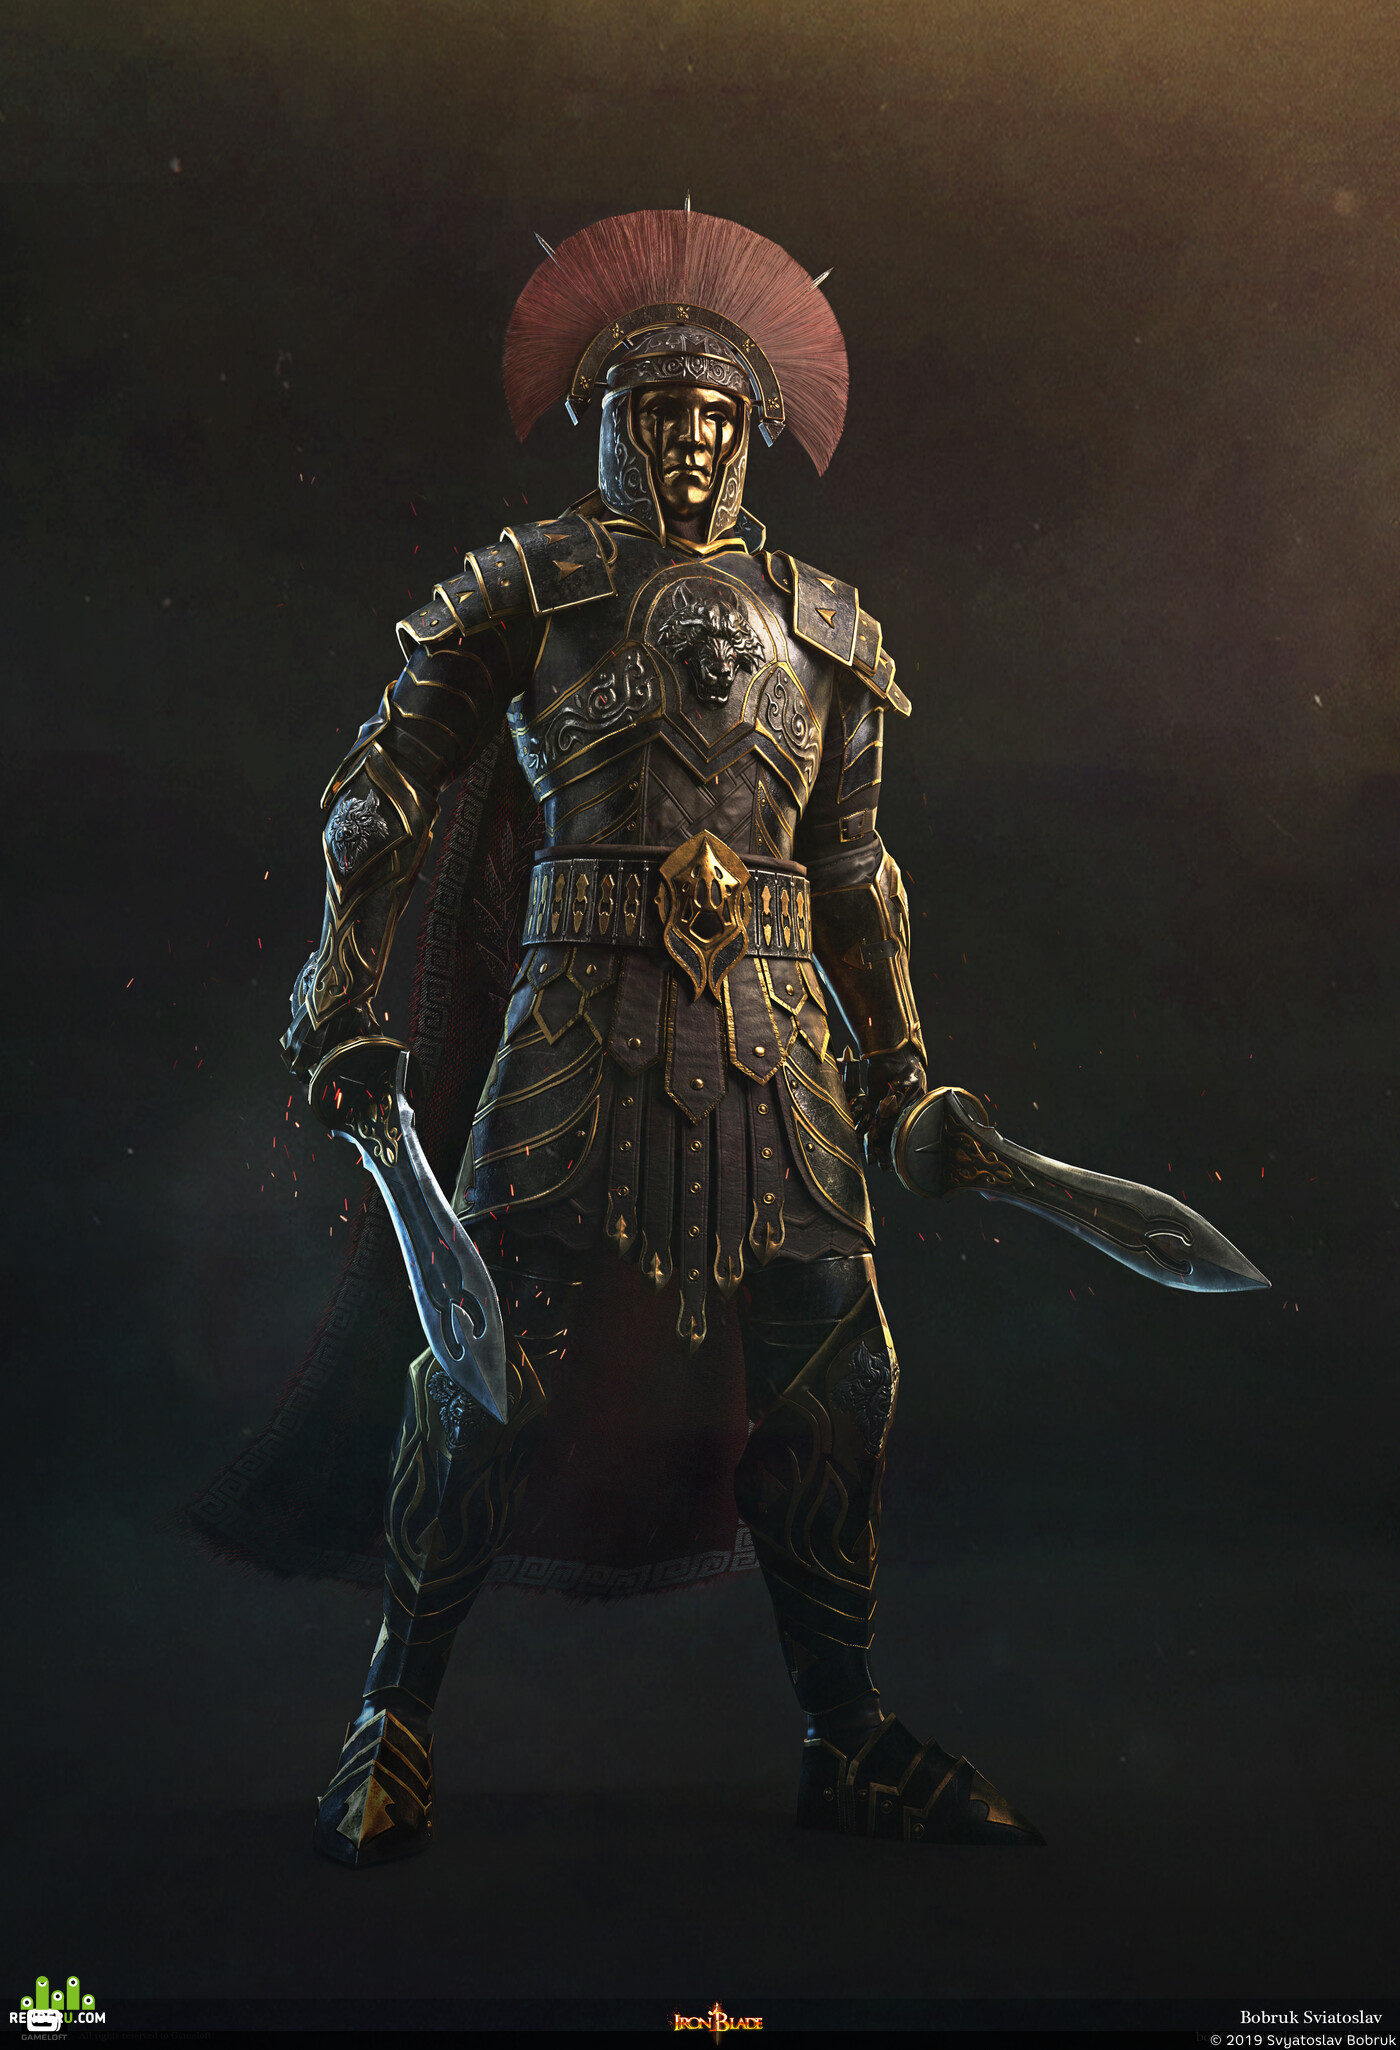 digital 3d, Characters, game art, illustration, Iron Blade, knight, epic